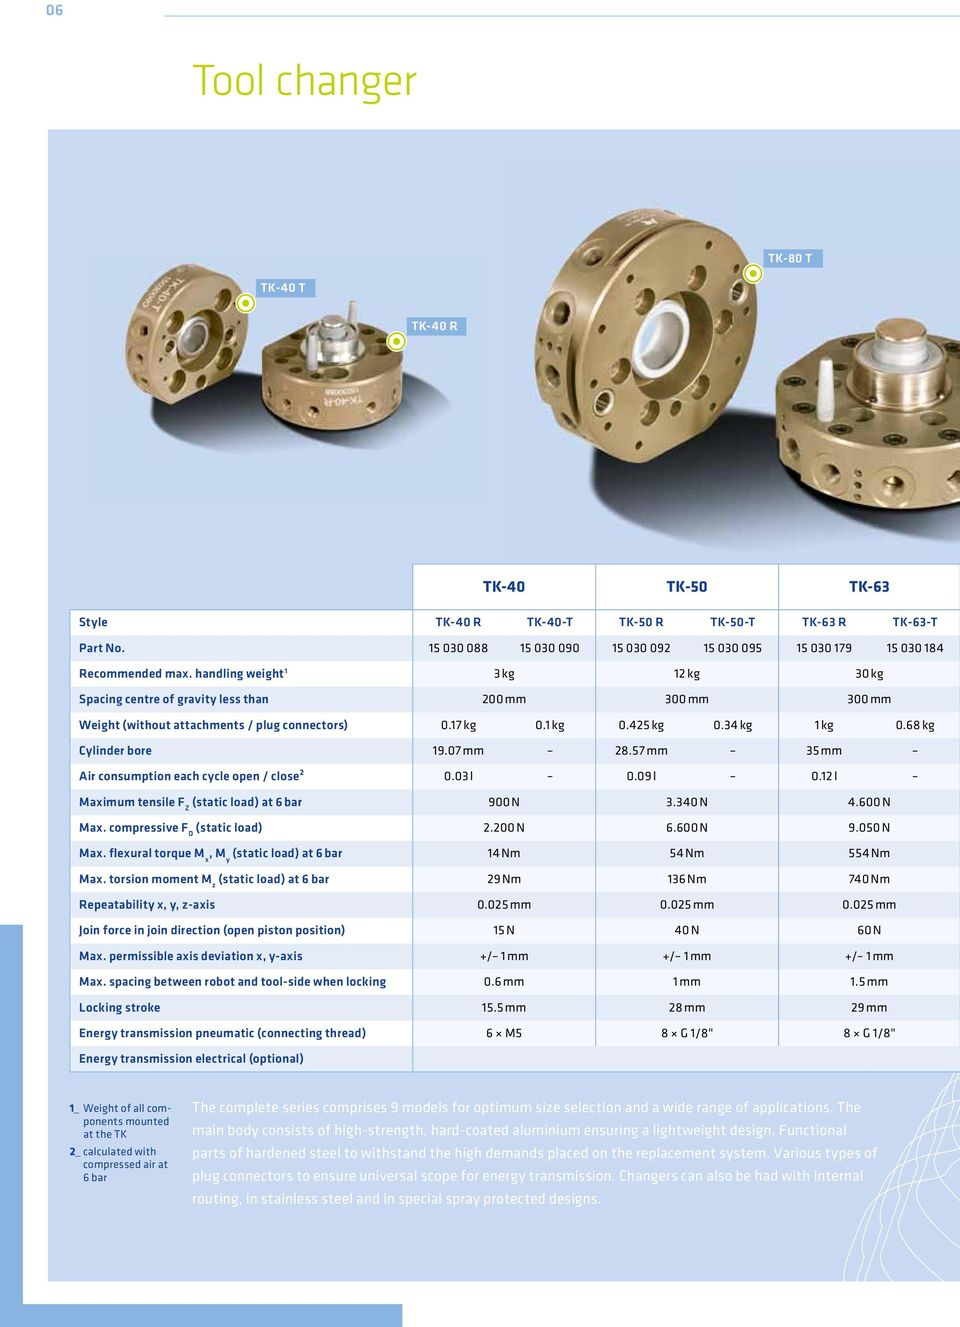 handling weight 1 3 kg 12 kg 30 kg Spacing centre of gravity less than 200 mm 300 mm 300 mm weight (without attachments / plug connectors) 0.17 kg 0.1 kg 0.425 kg 0.34 kg 1 kg 0.